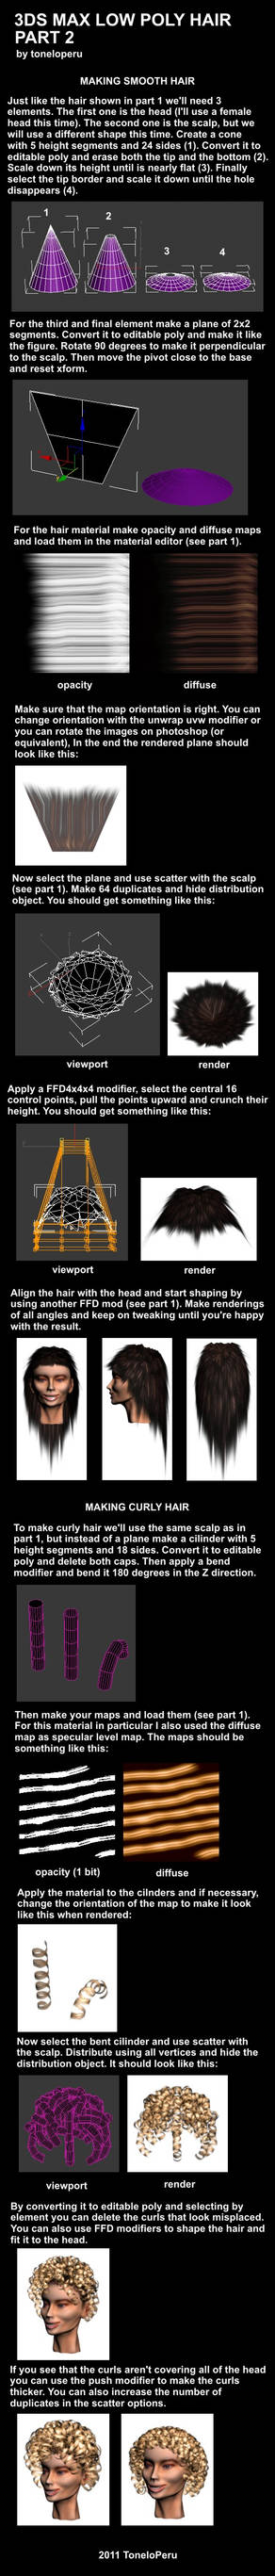 Low poly hair tutorial pt 2